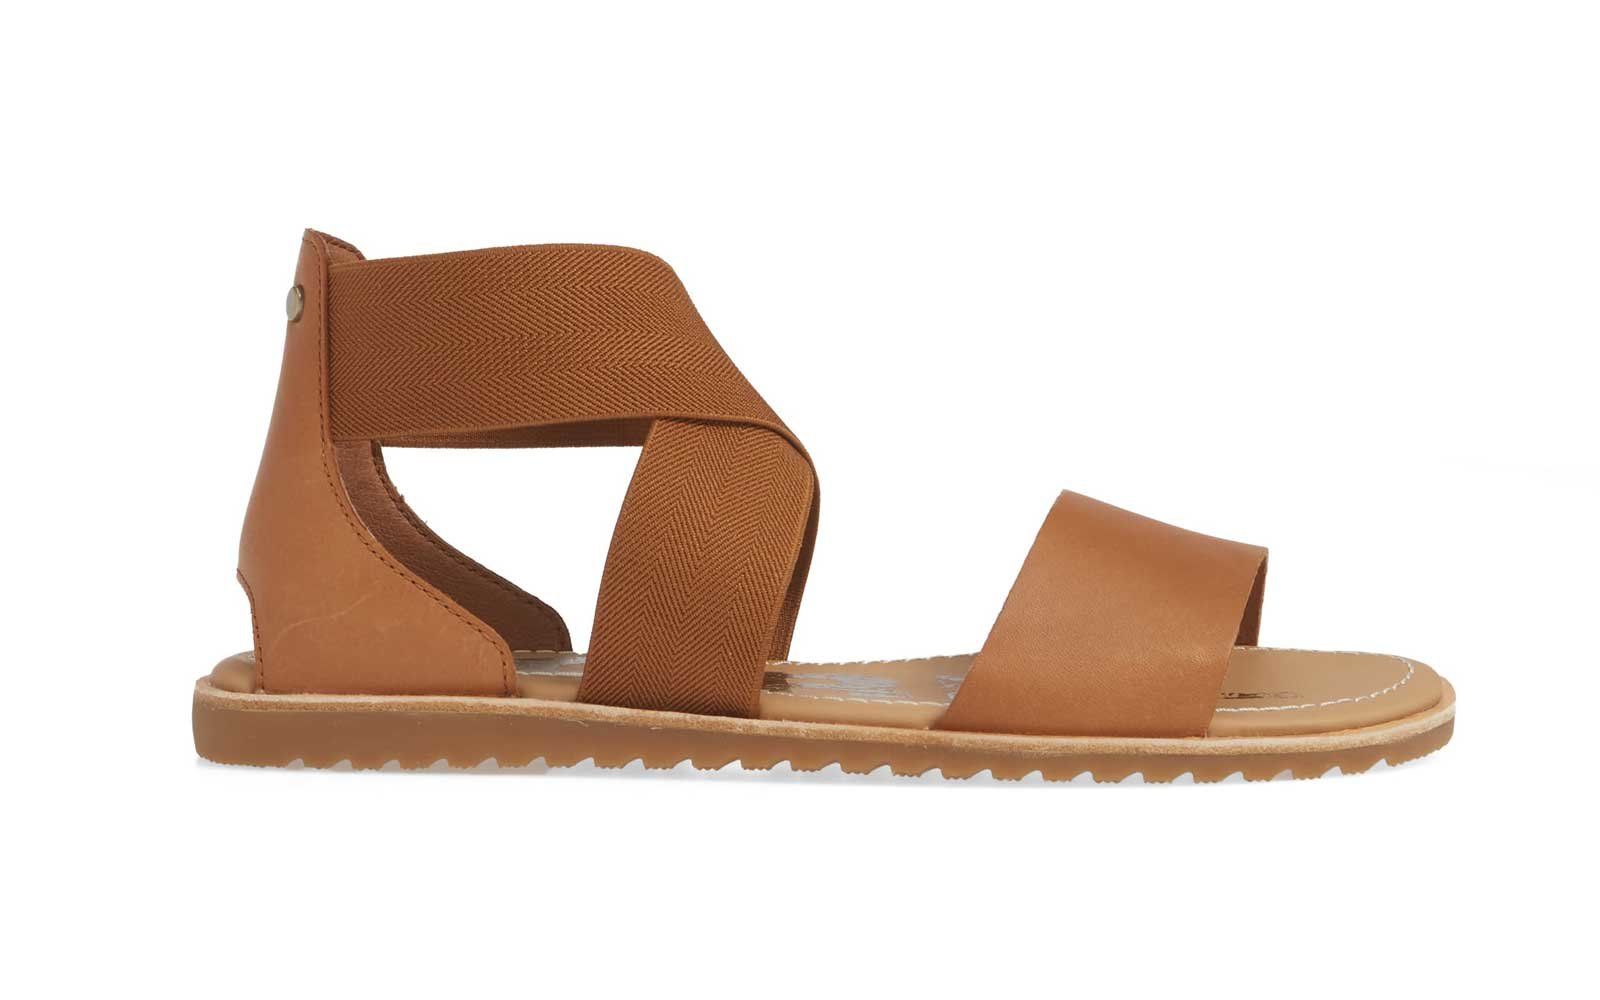 comfy walking sandals